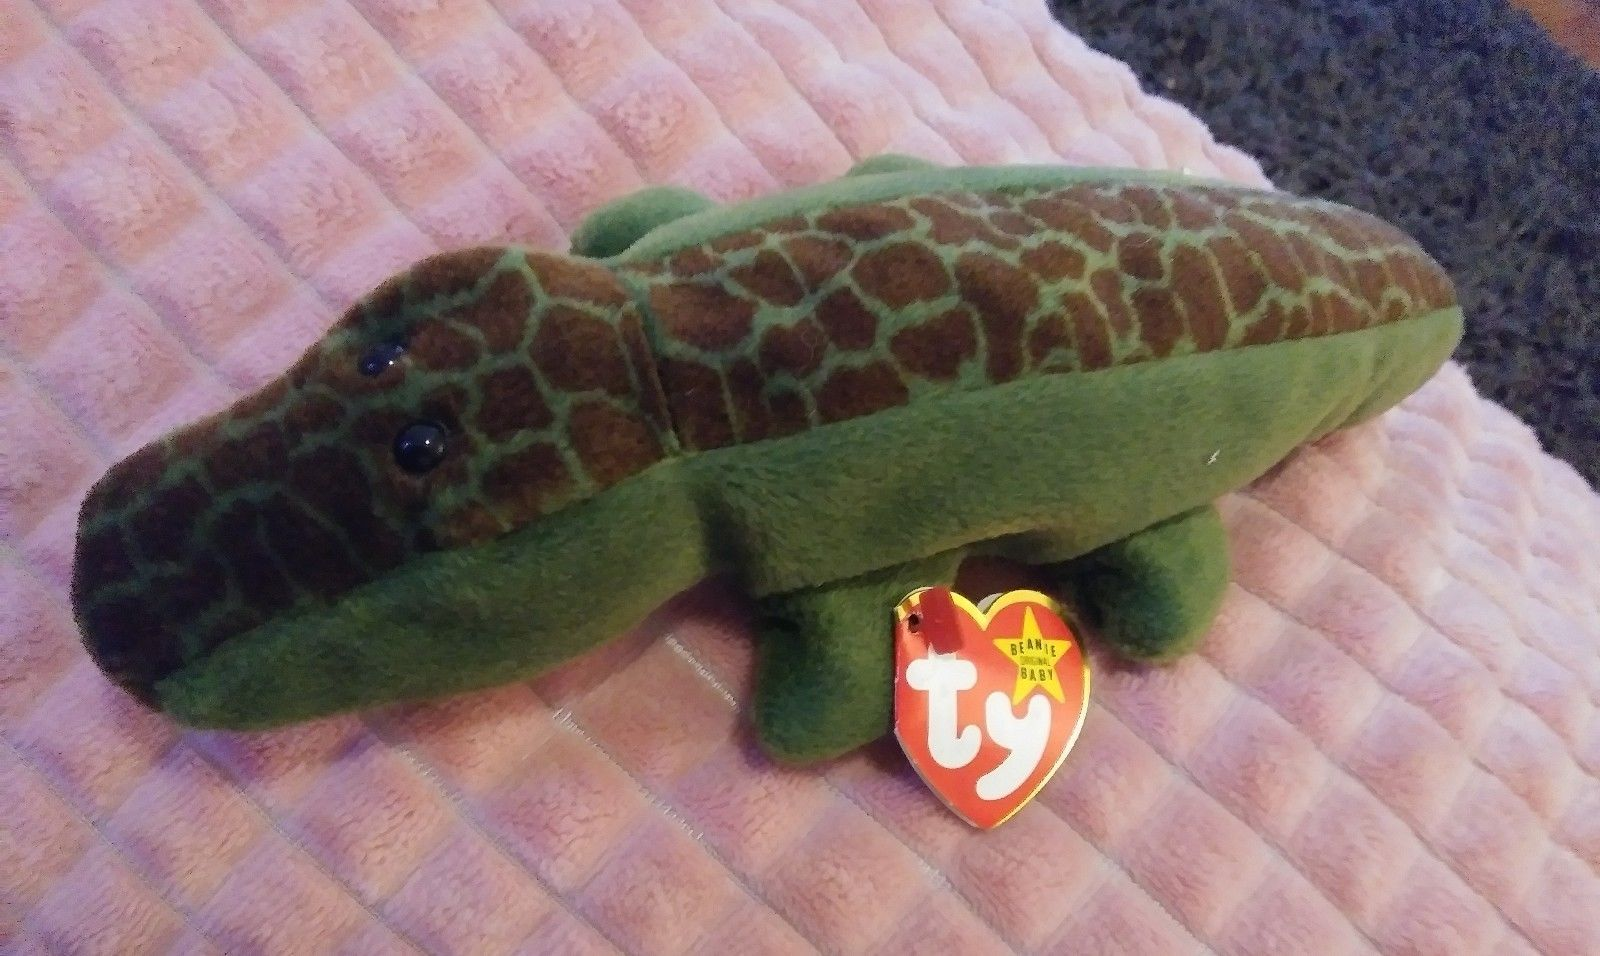 6d57bfba5a3 S l1600. S l1600. Ty Ally The Alligator Bean Bag Toy Beanie Baby Retired  Original Collections